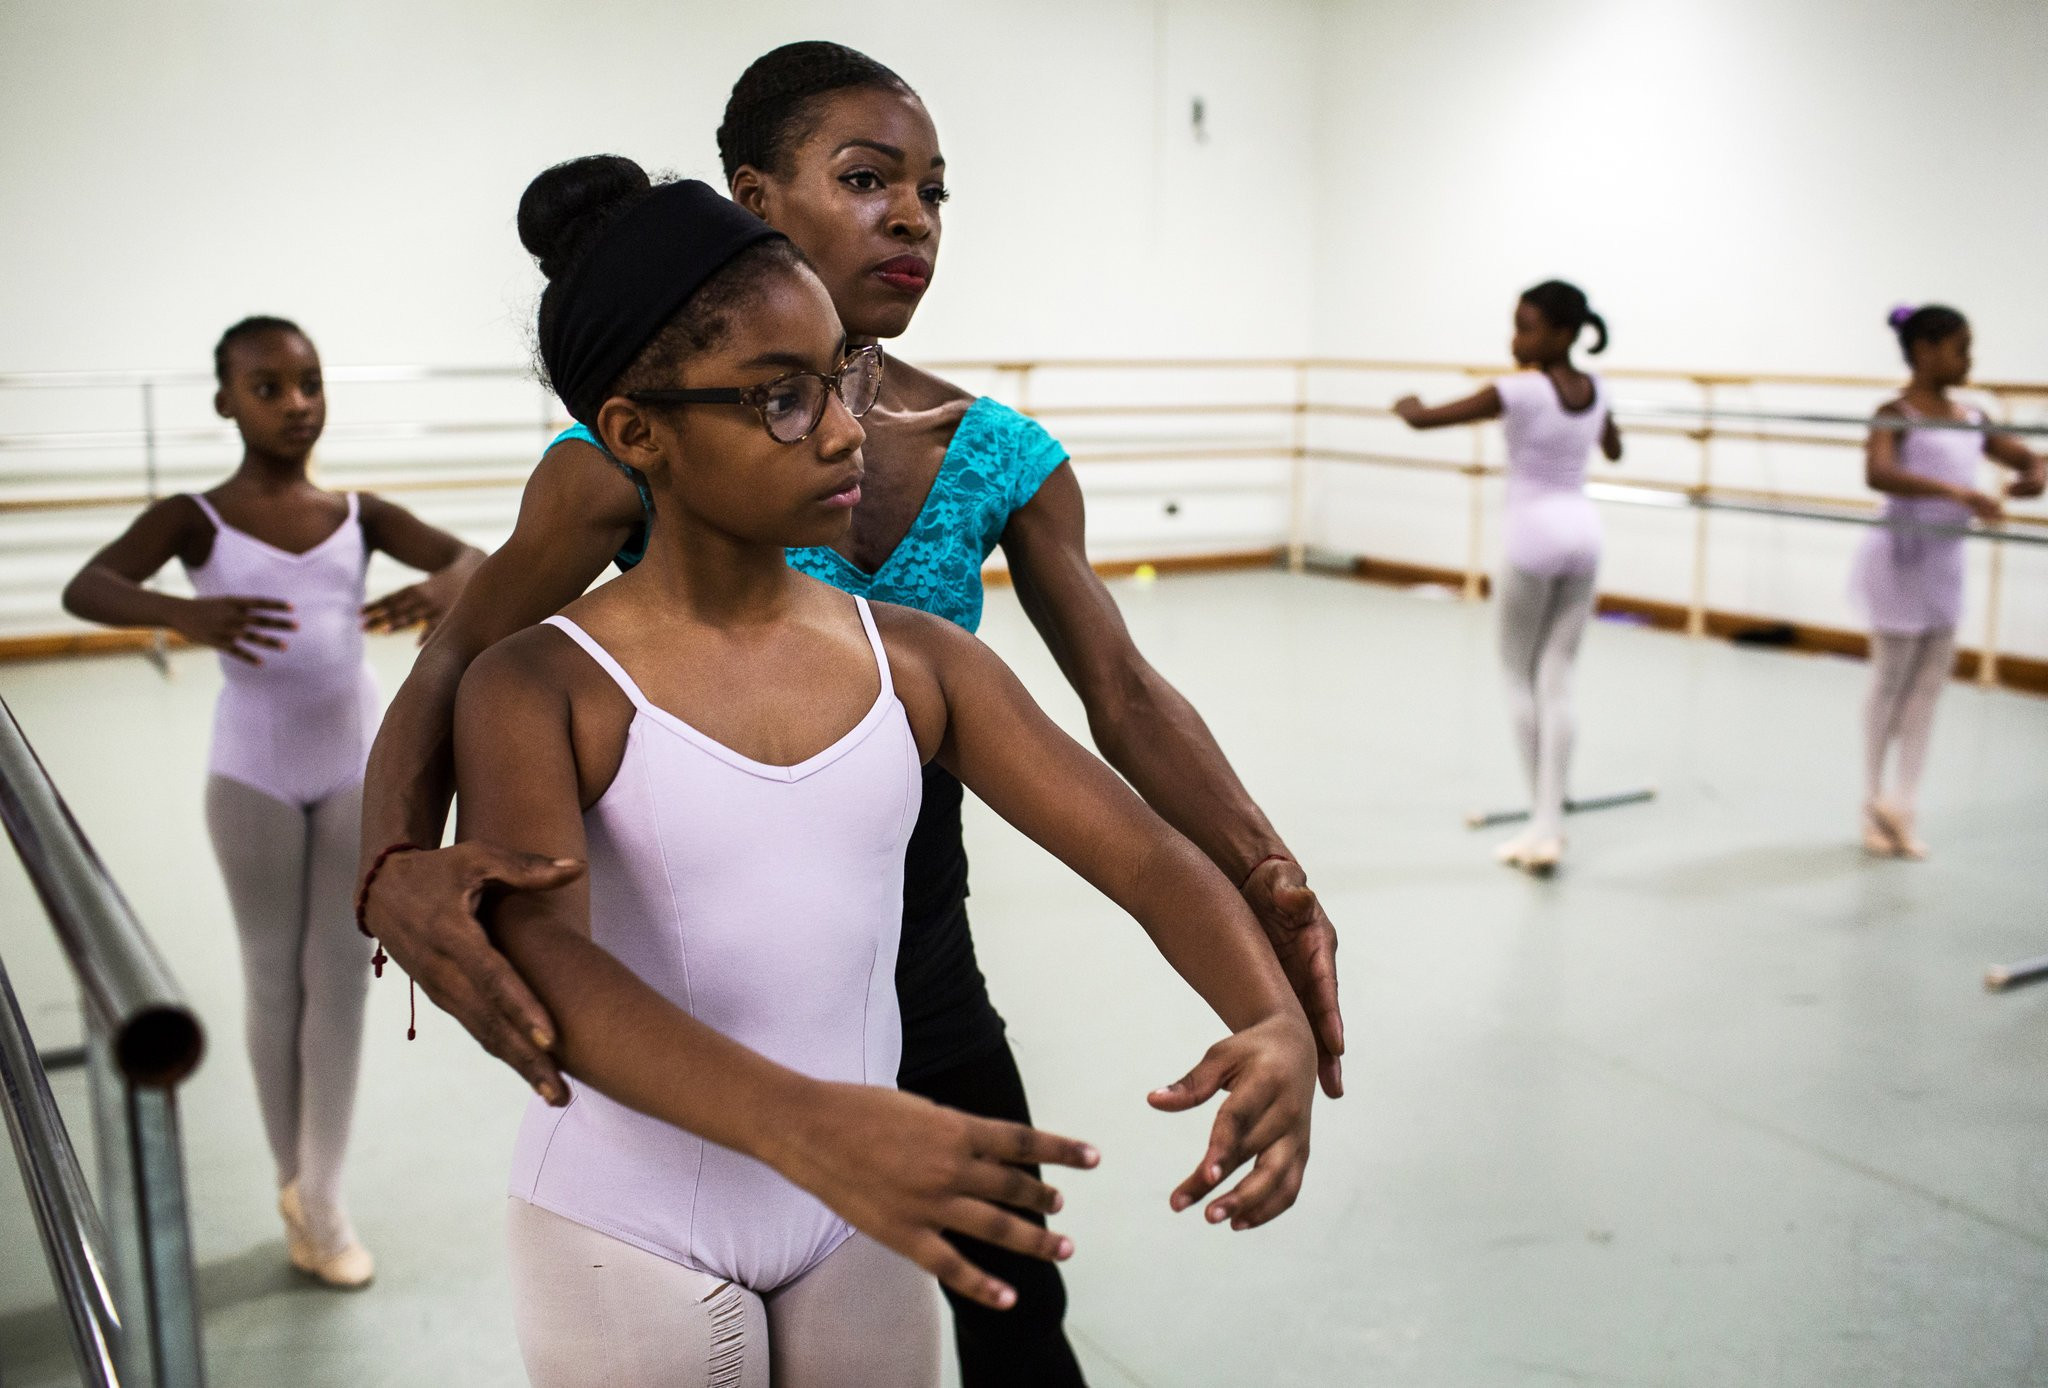 Harlem School of the Arts, Once Shuttered and in Debt, Now Dreams Big